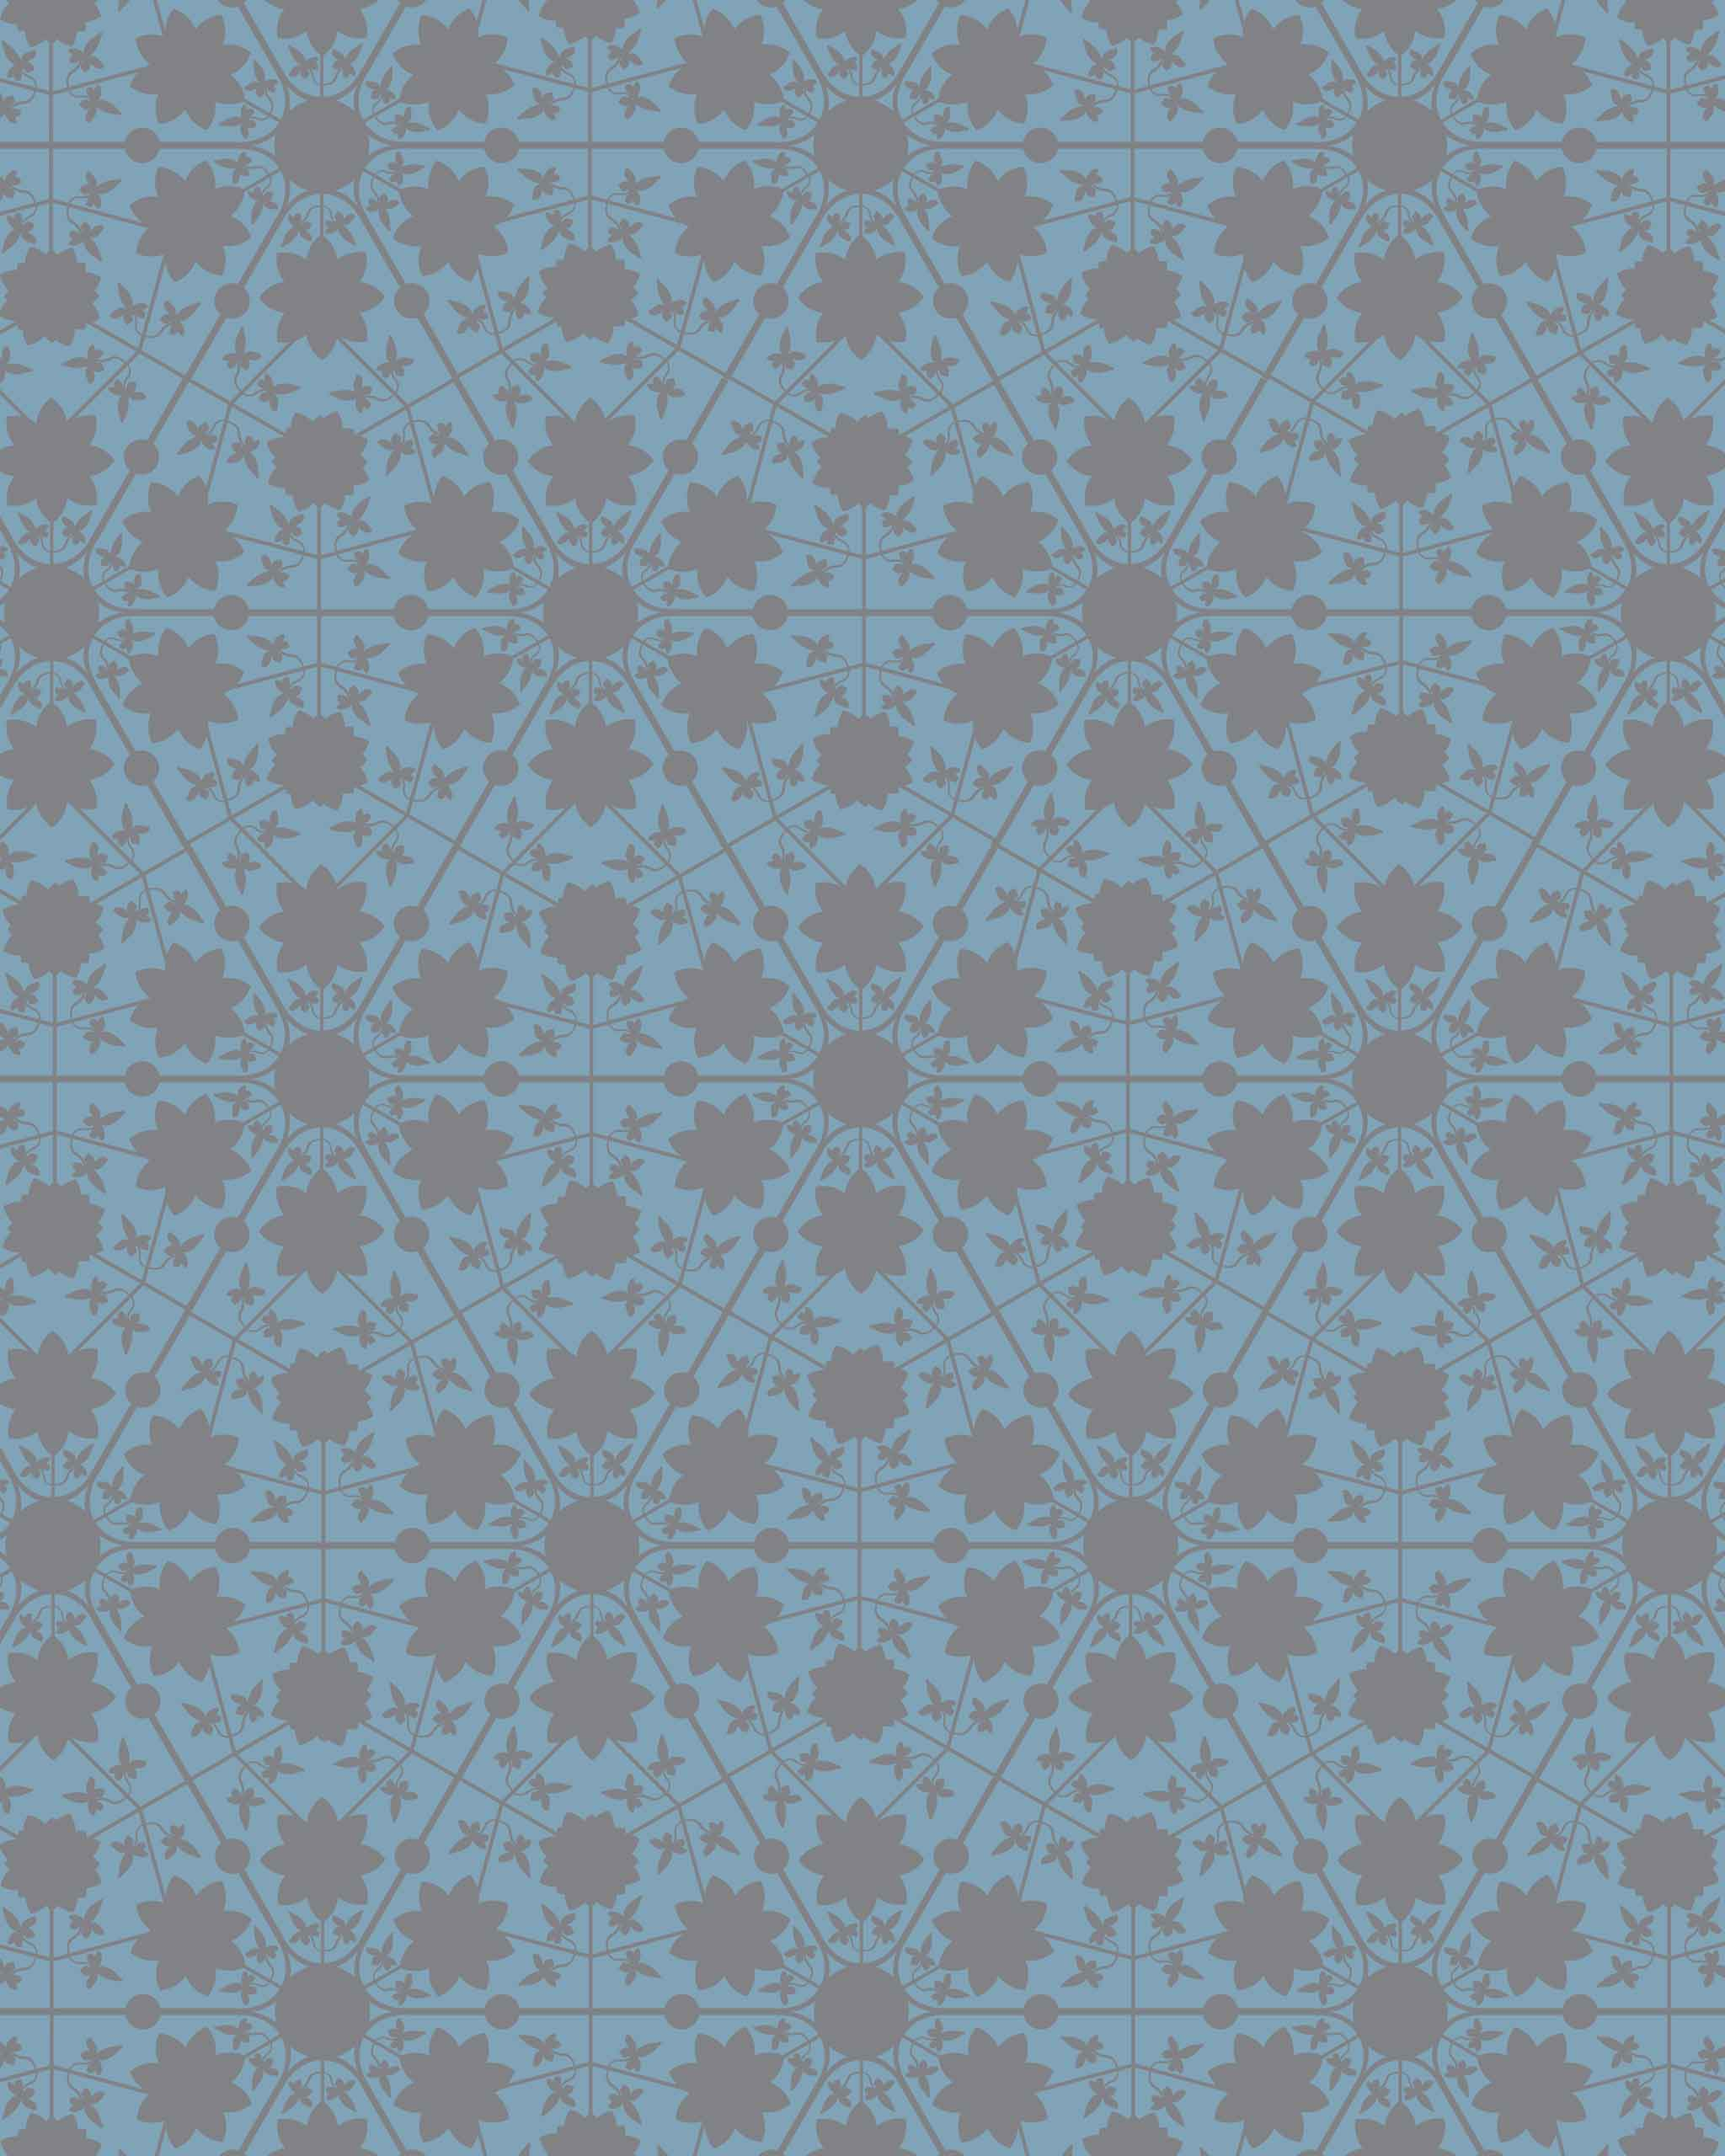 'Bouton' in colour 'Frost' as designed by Michael Christie for what was Red Spruce. | Image by the Ruggist.